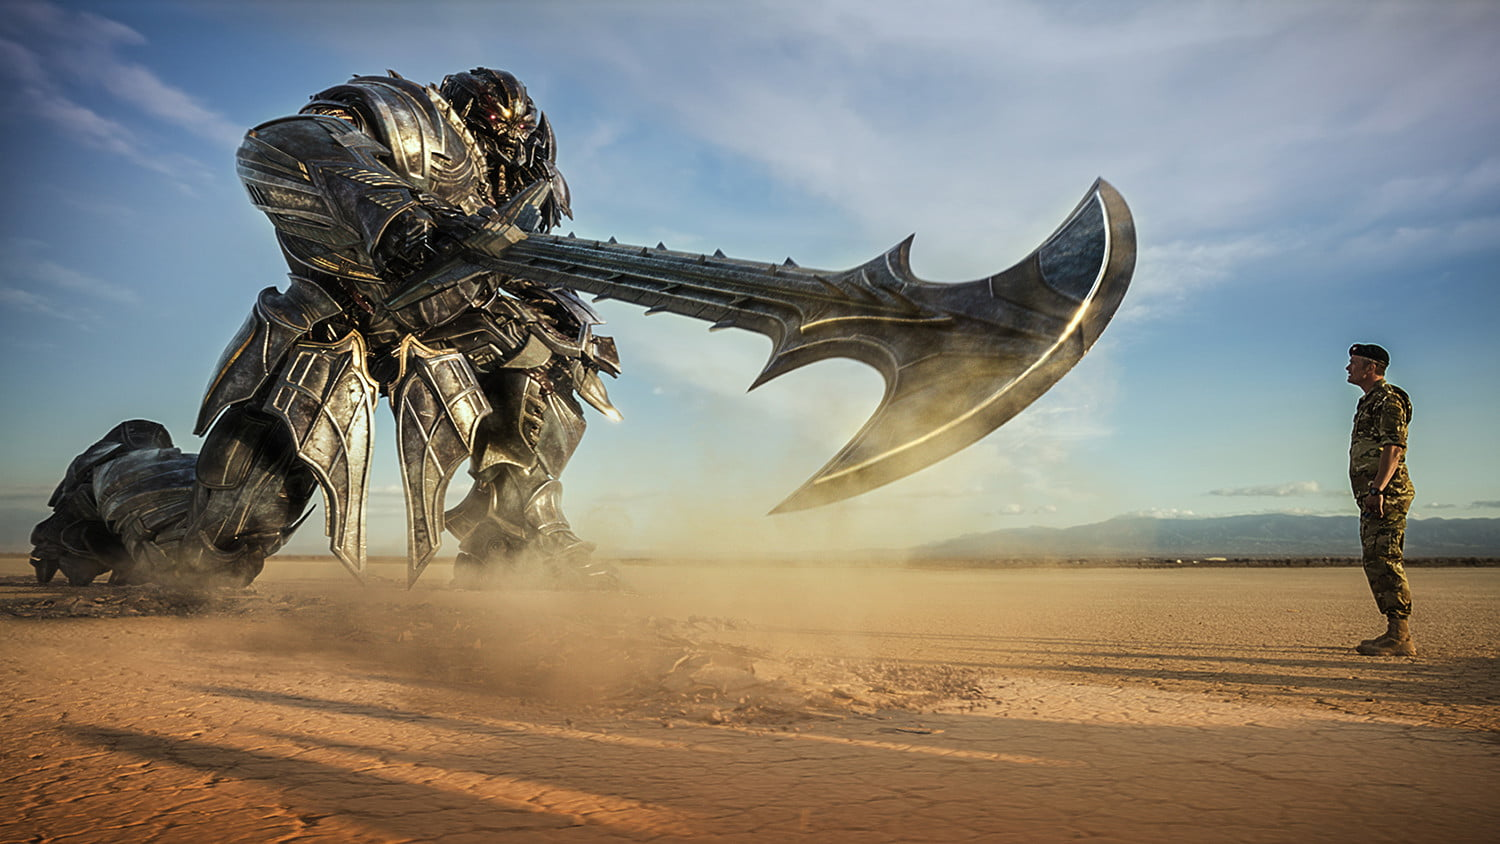 transformers: the last knight' review: a new low for the franchise